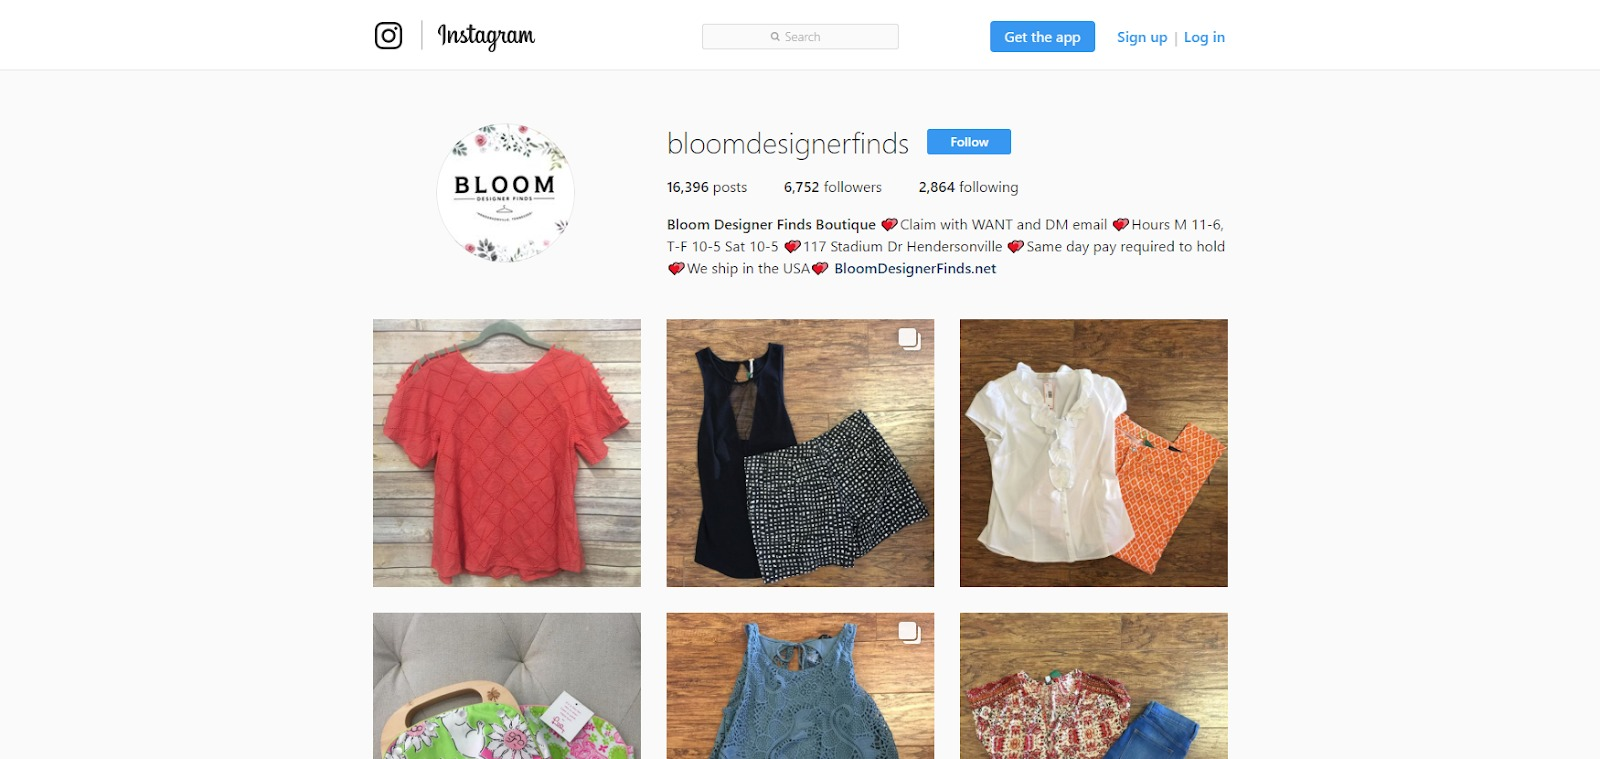 Bloom Designer Finds Instagram screenshot.